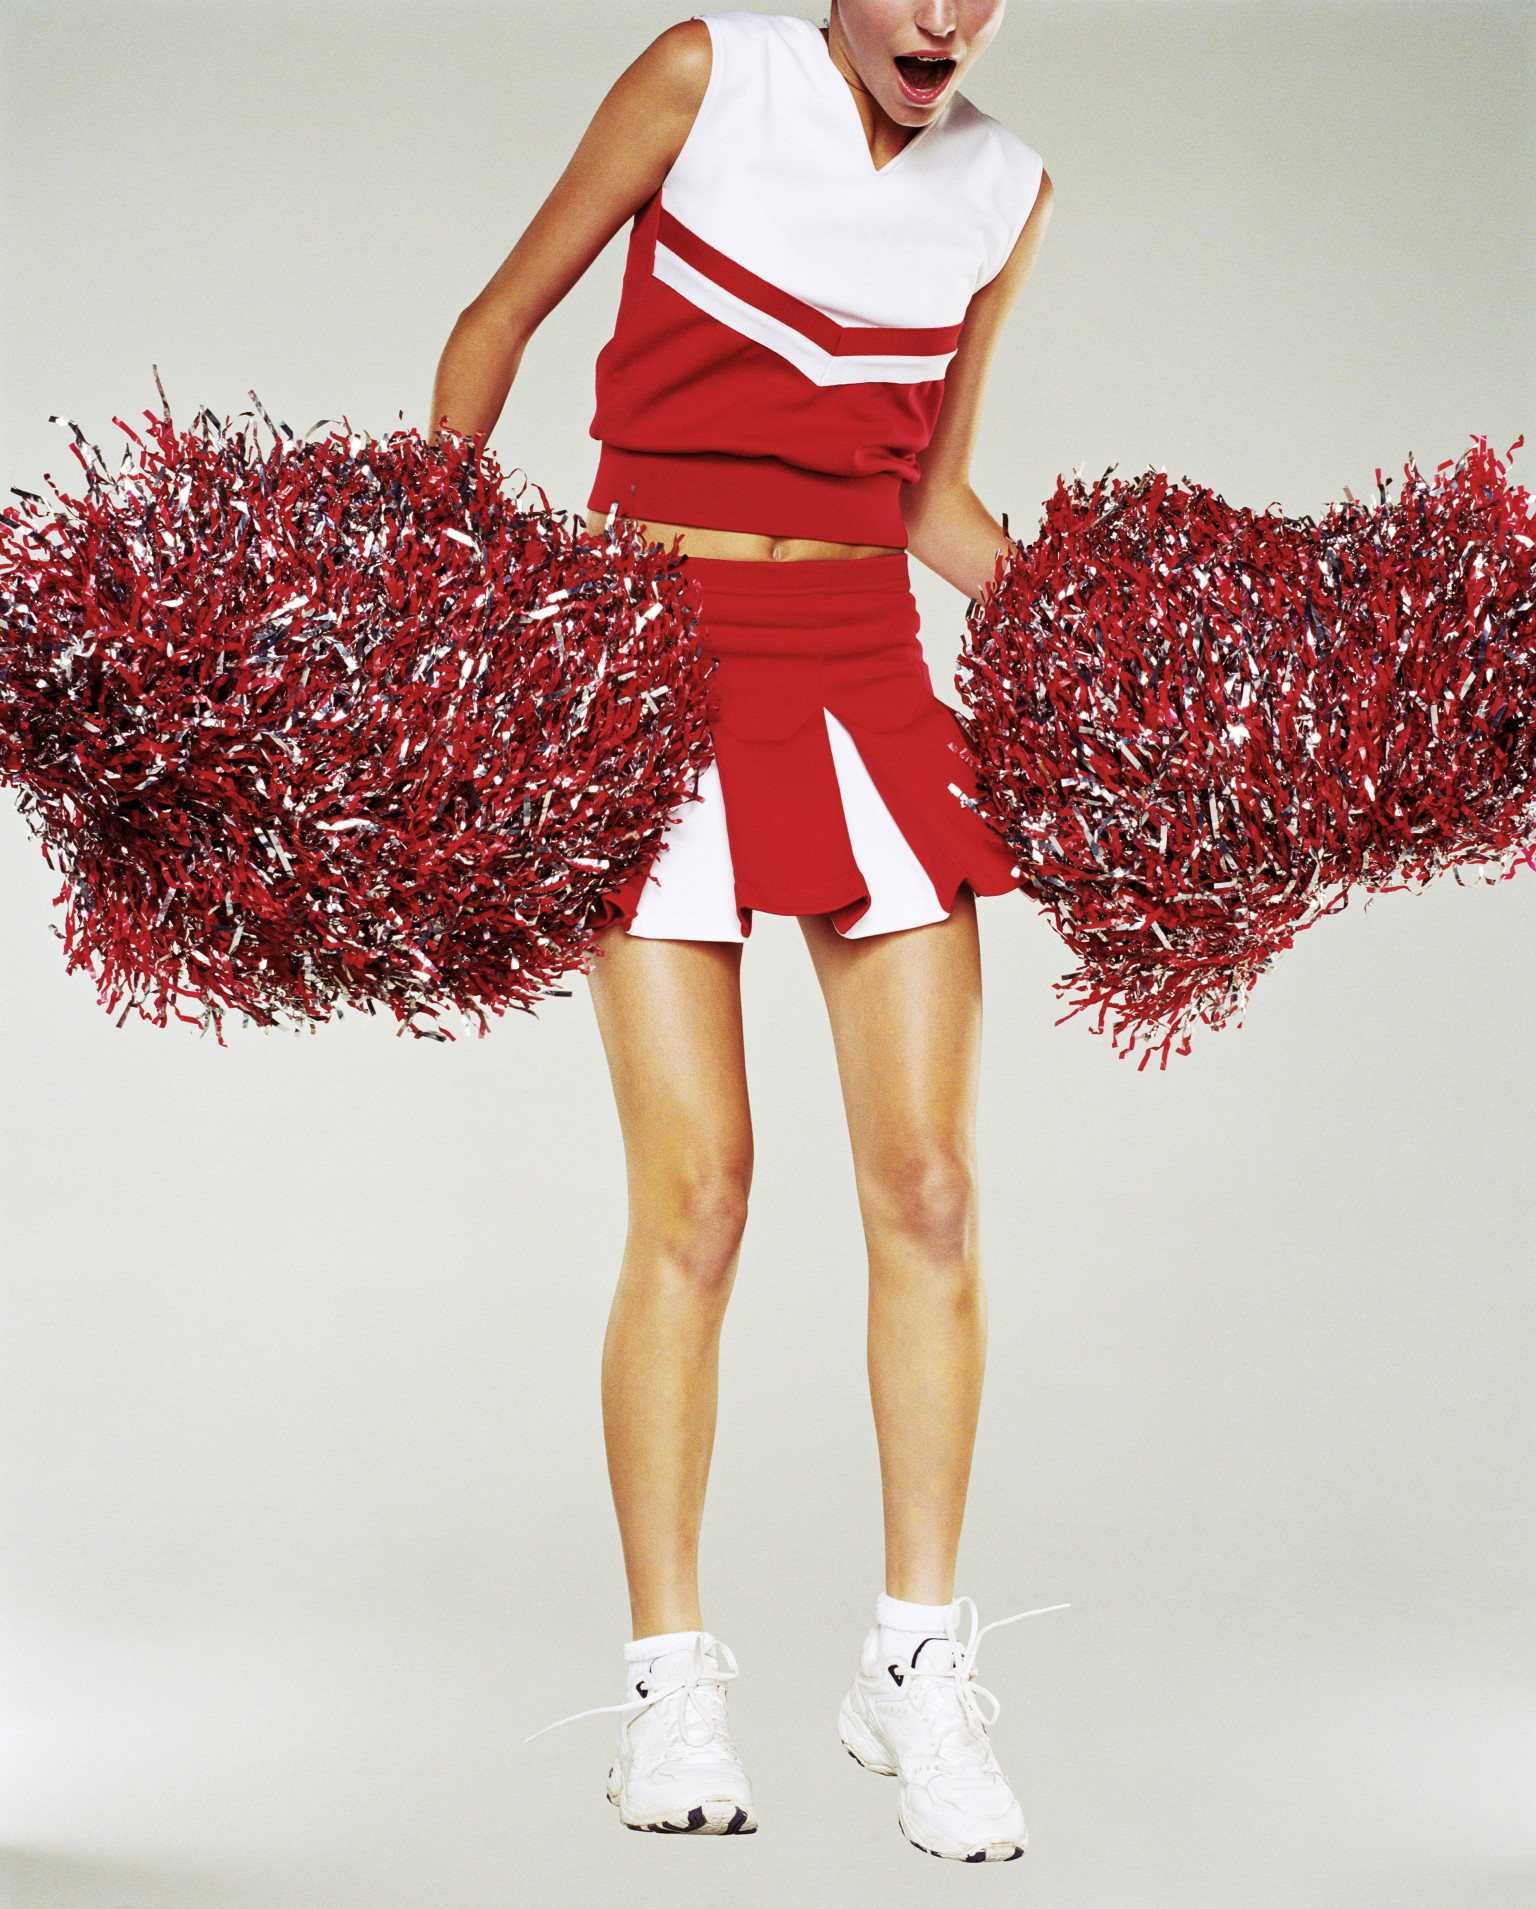 Transvestite cheer leader pics